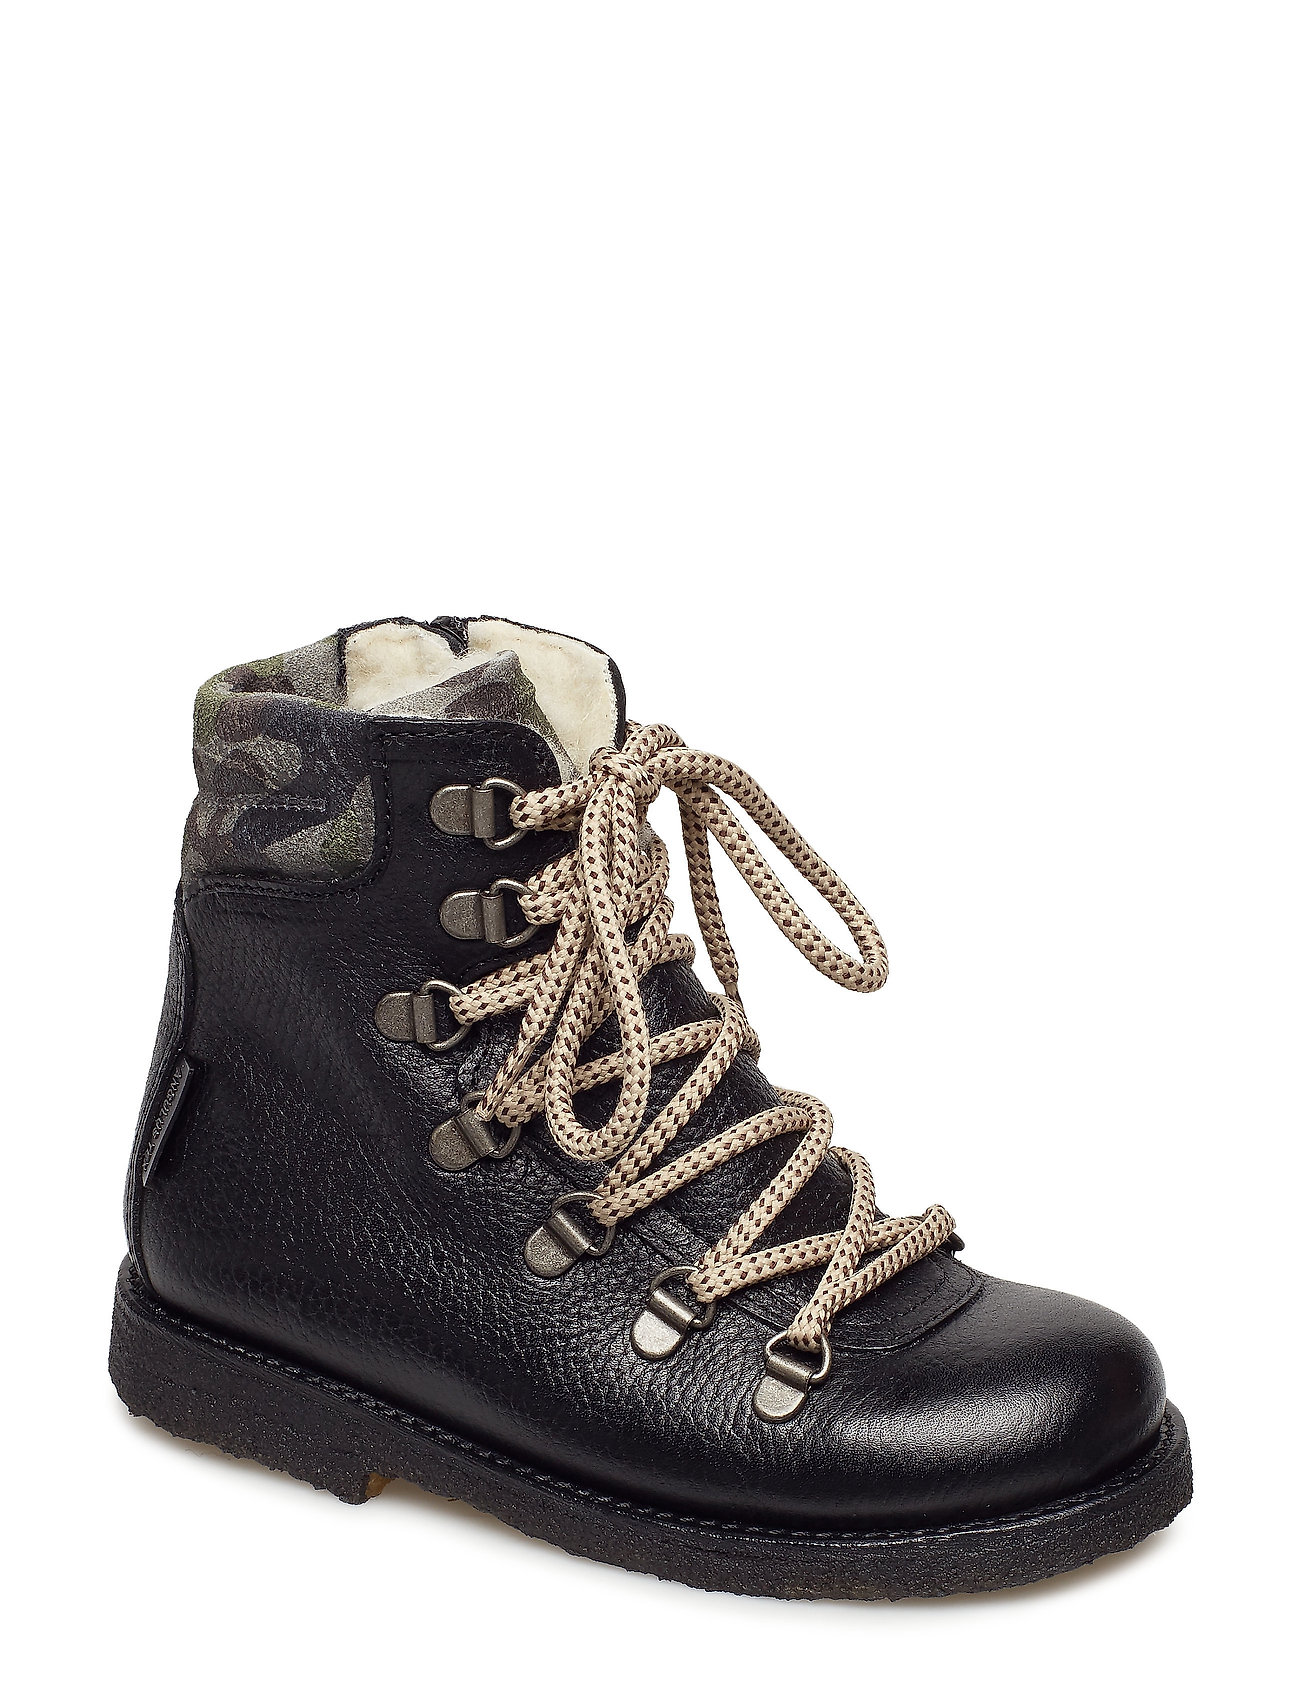 ANGULUS Boots - flat - with velcro - 2504/2175/1604 BLACK/ARMY PRIN